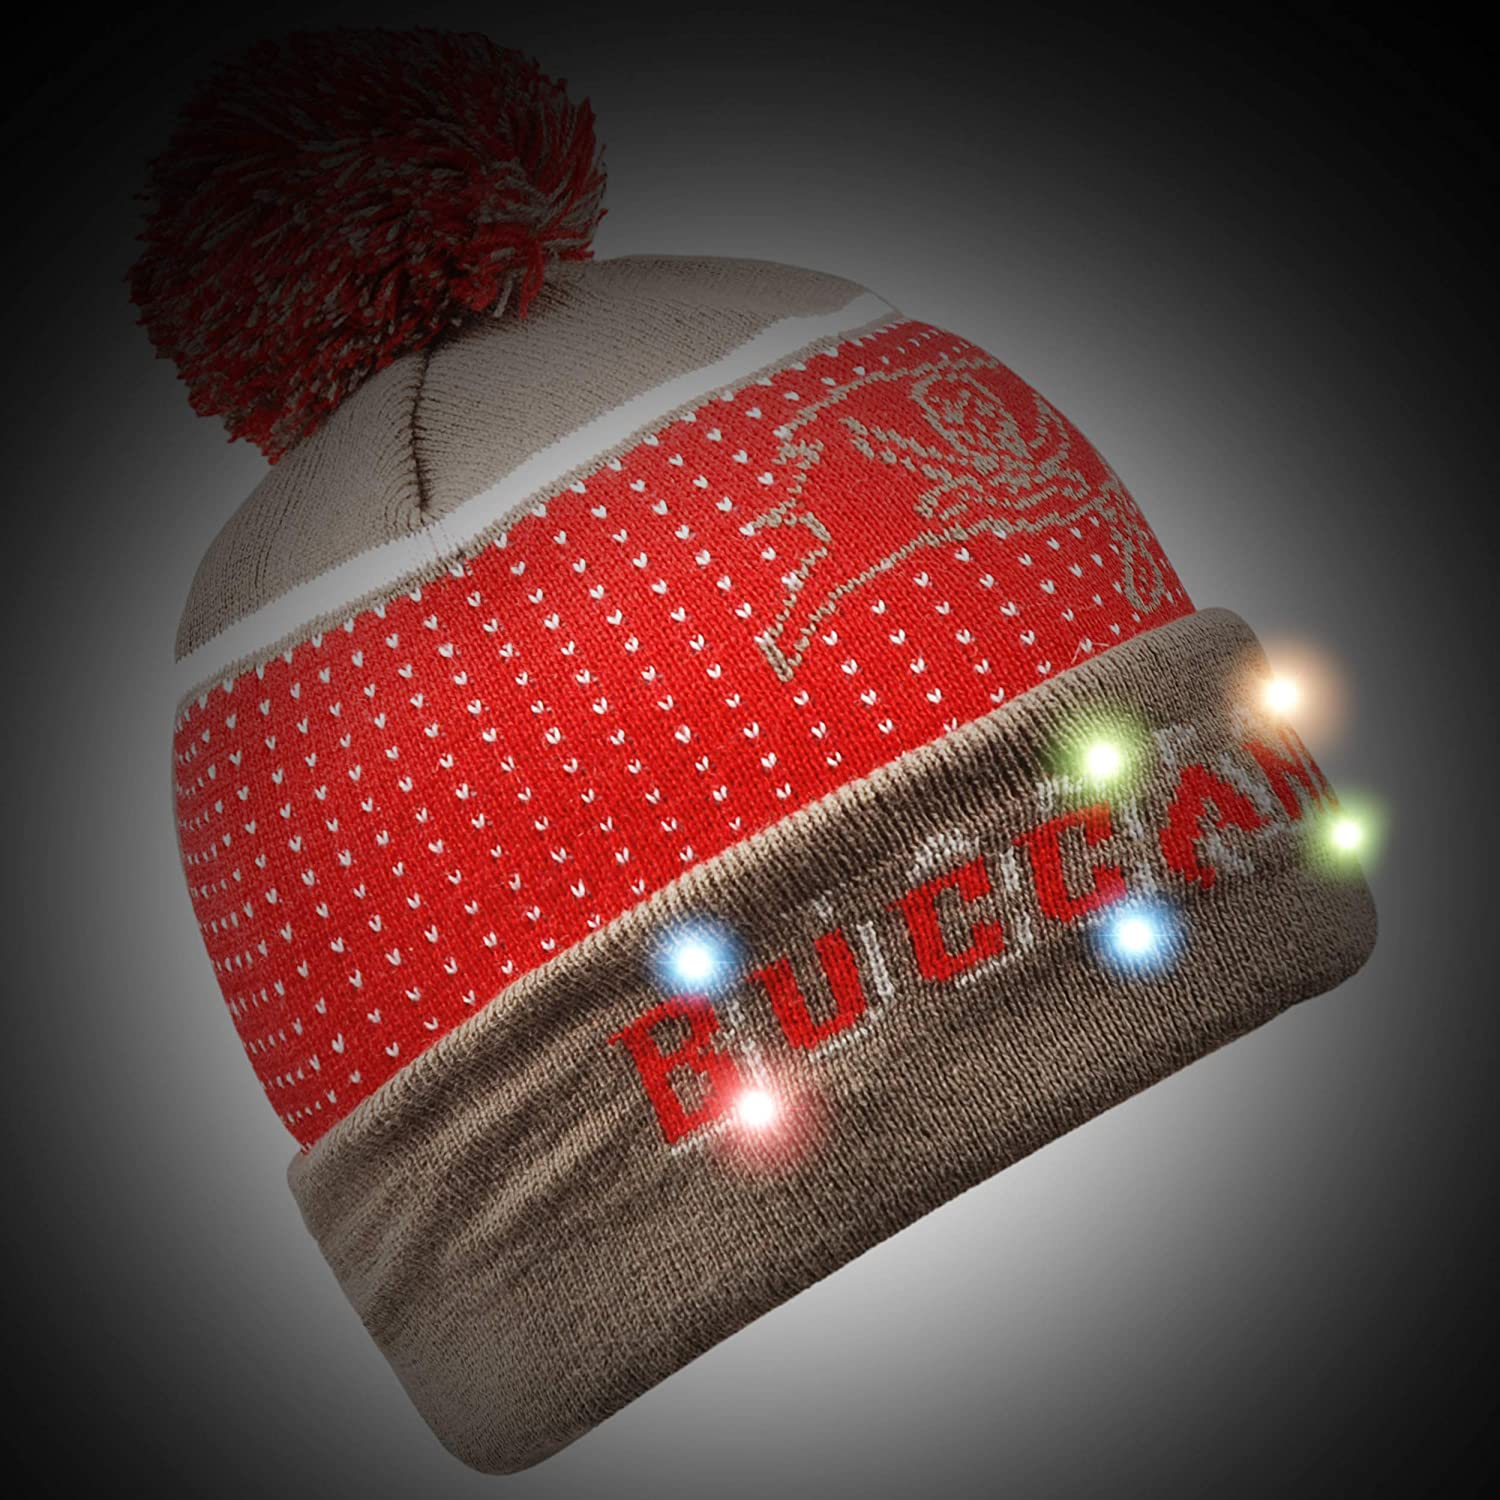 FOCO NFL Knit Light Up Beanie Hat